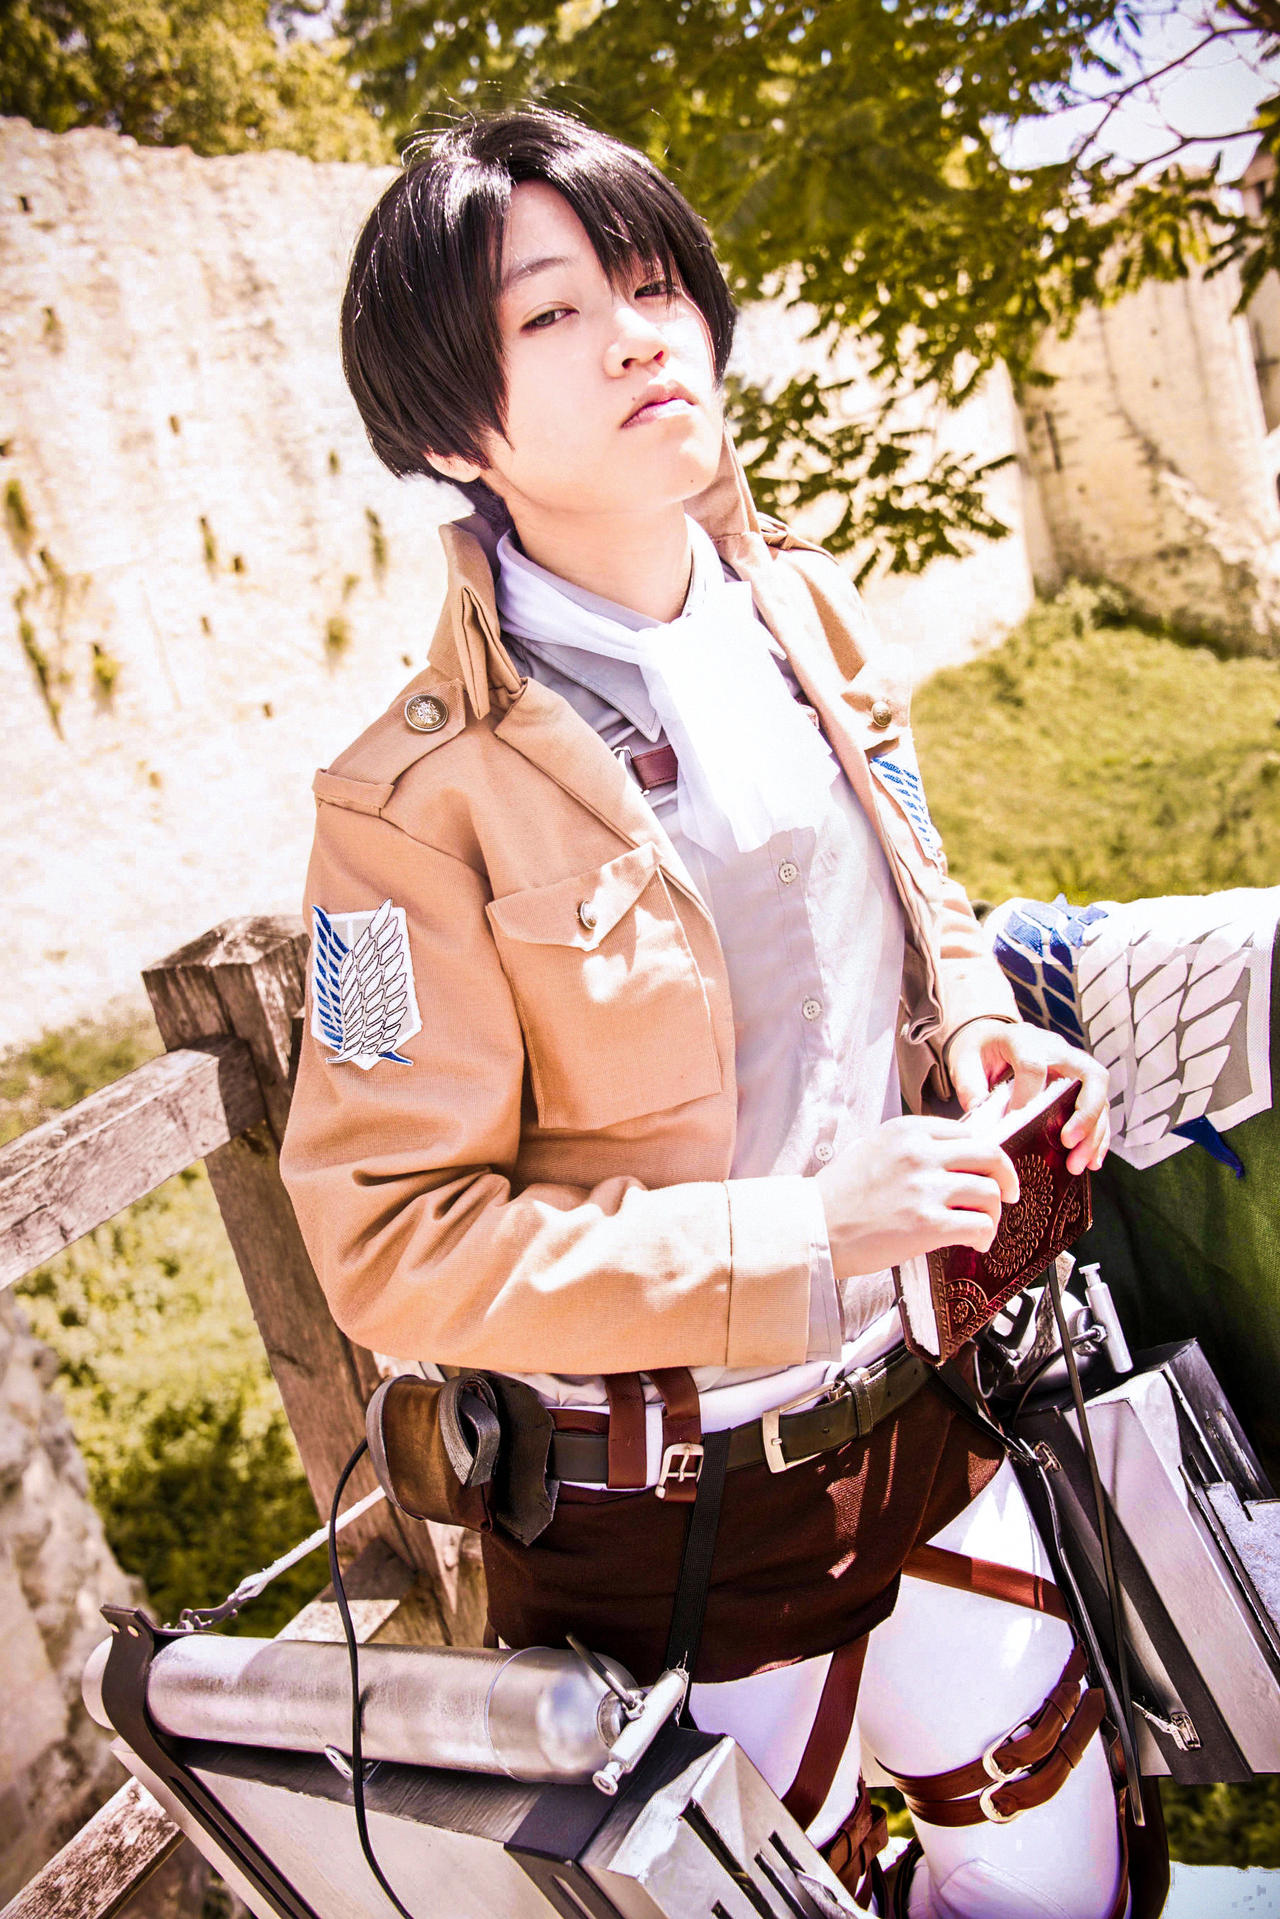 Shingeki no Kyojin - The Proof We Live by TrustOurWorldNow